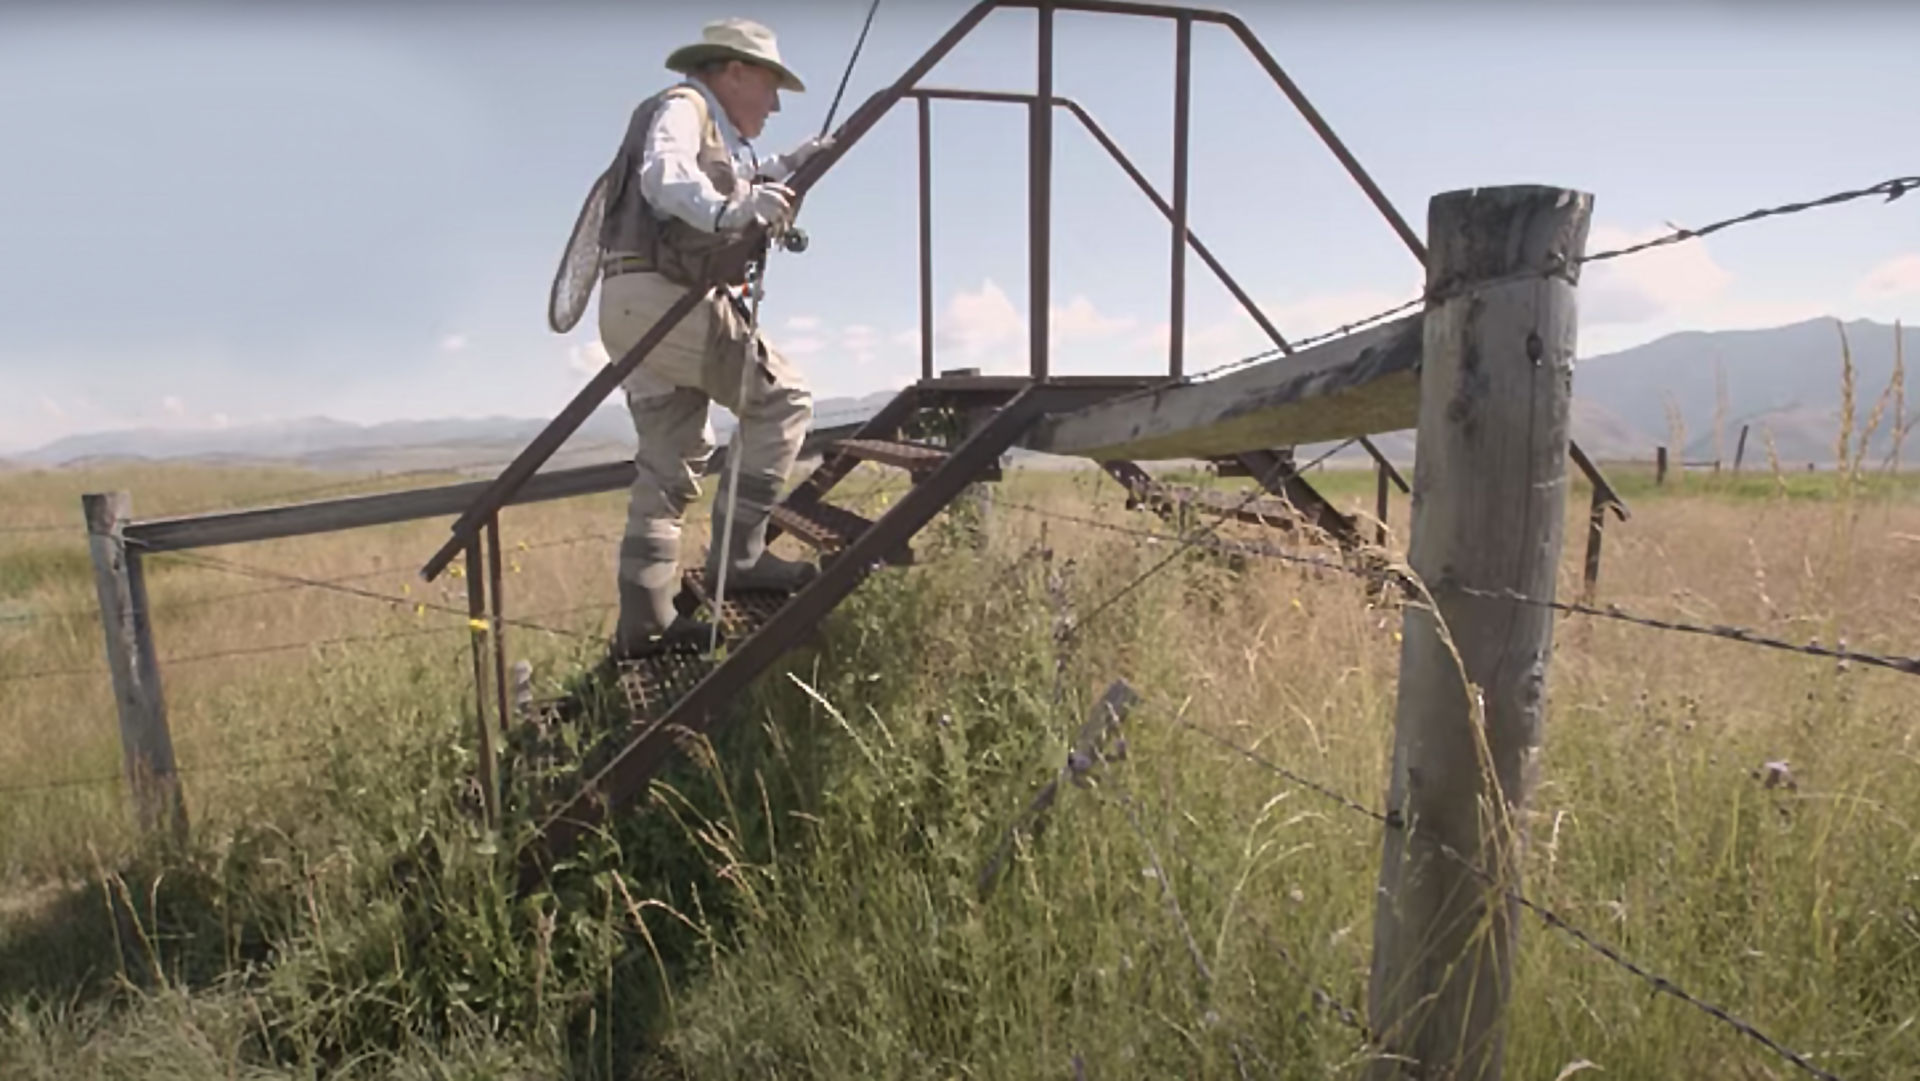 Lee Perkins crossing a fence with his fly fishing gear.